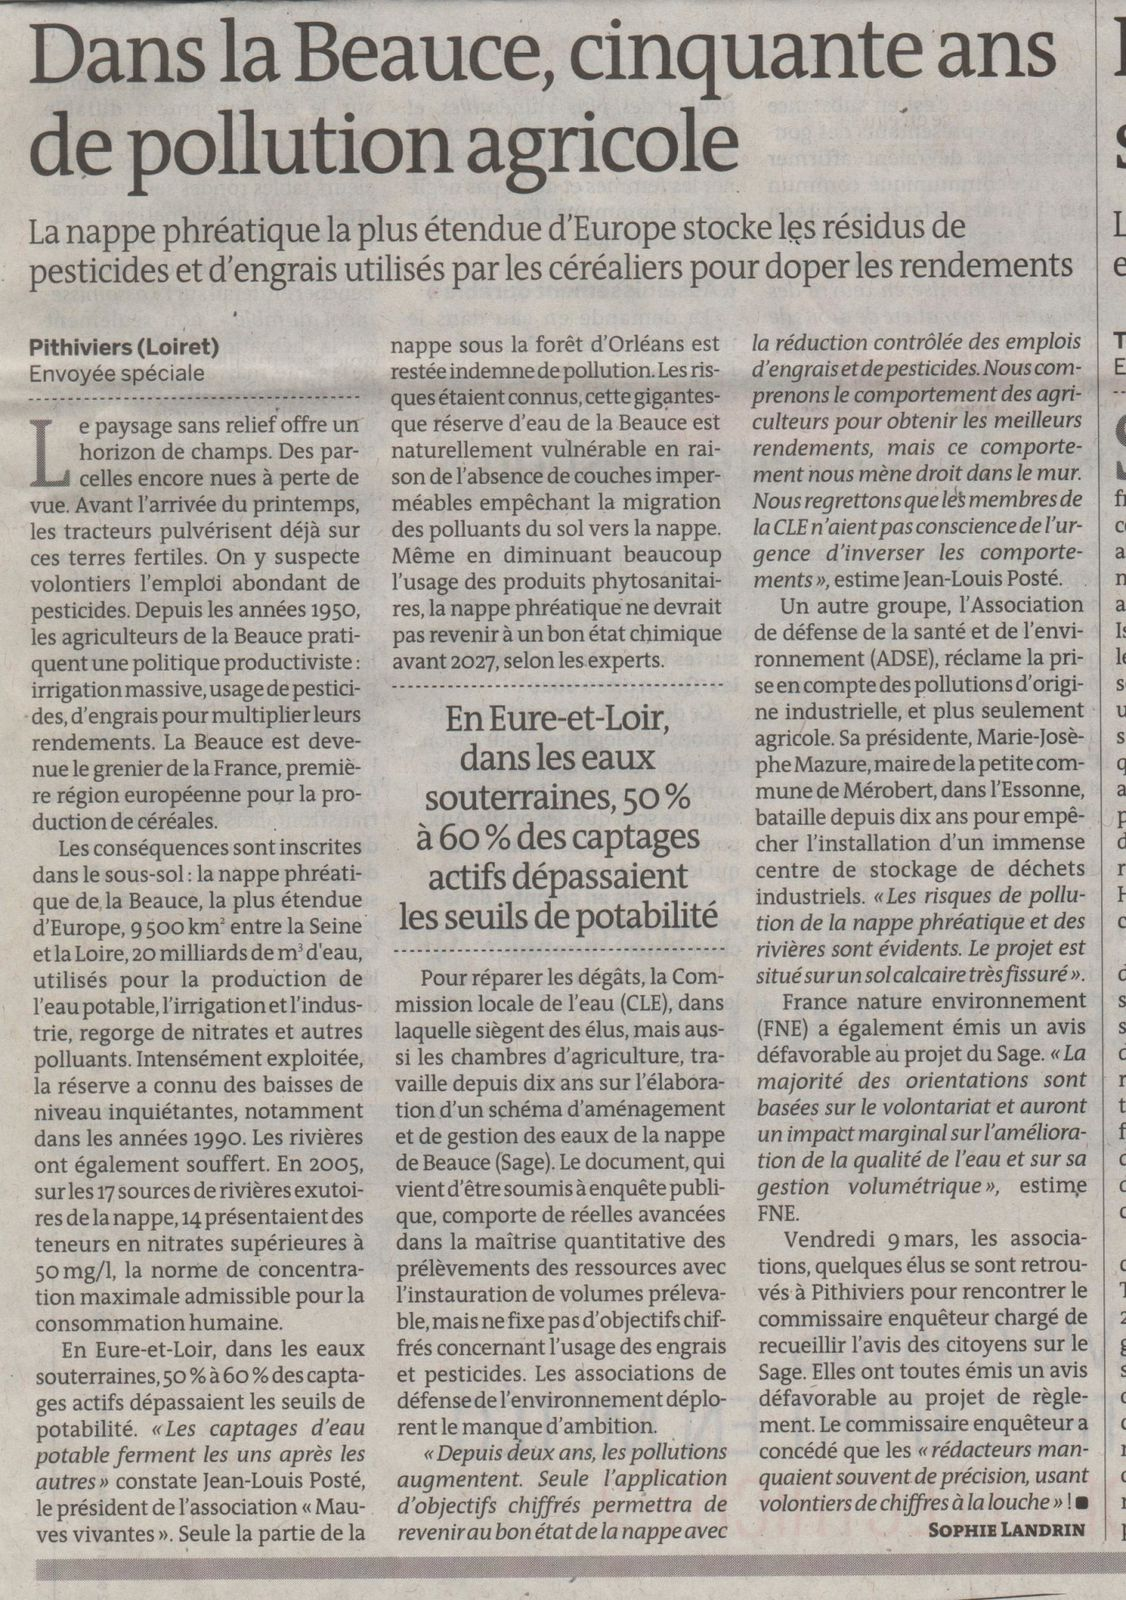 Pollution agricole Beauce - le monde - 13-03-2012